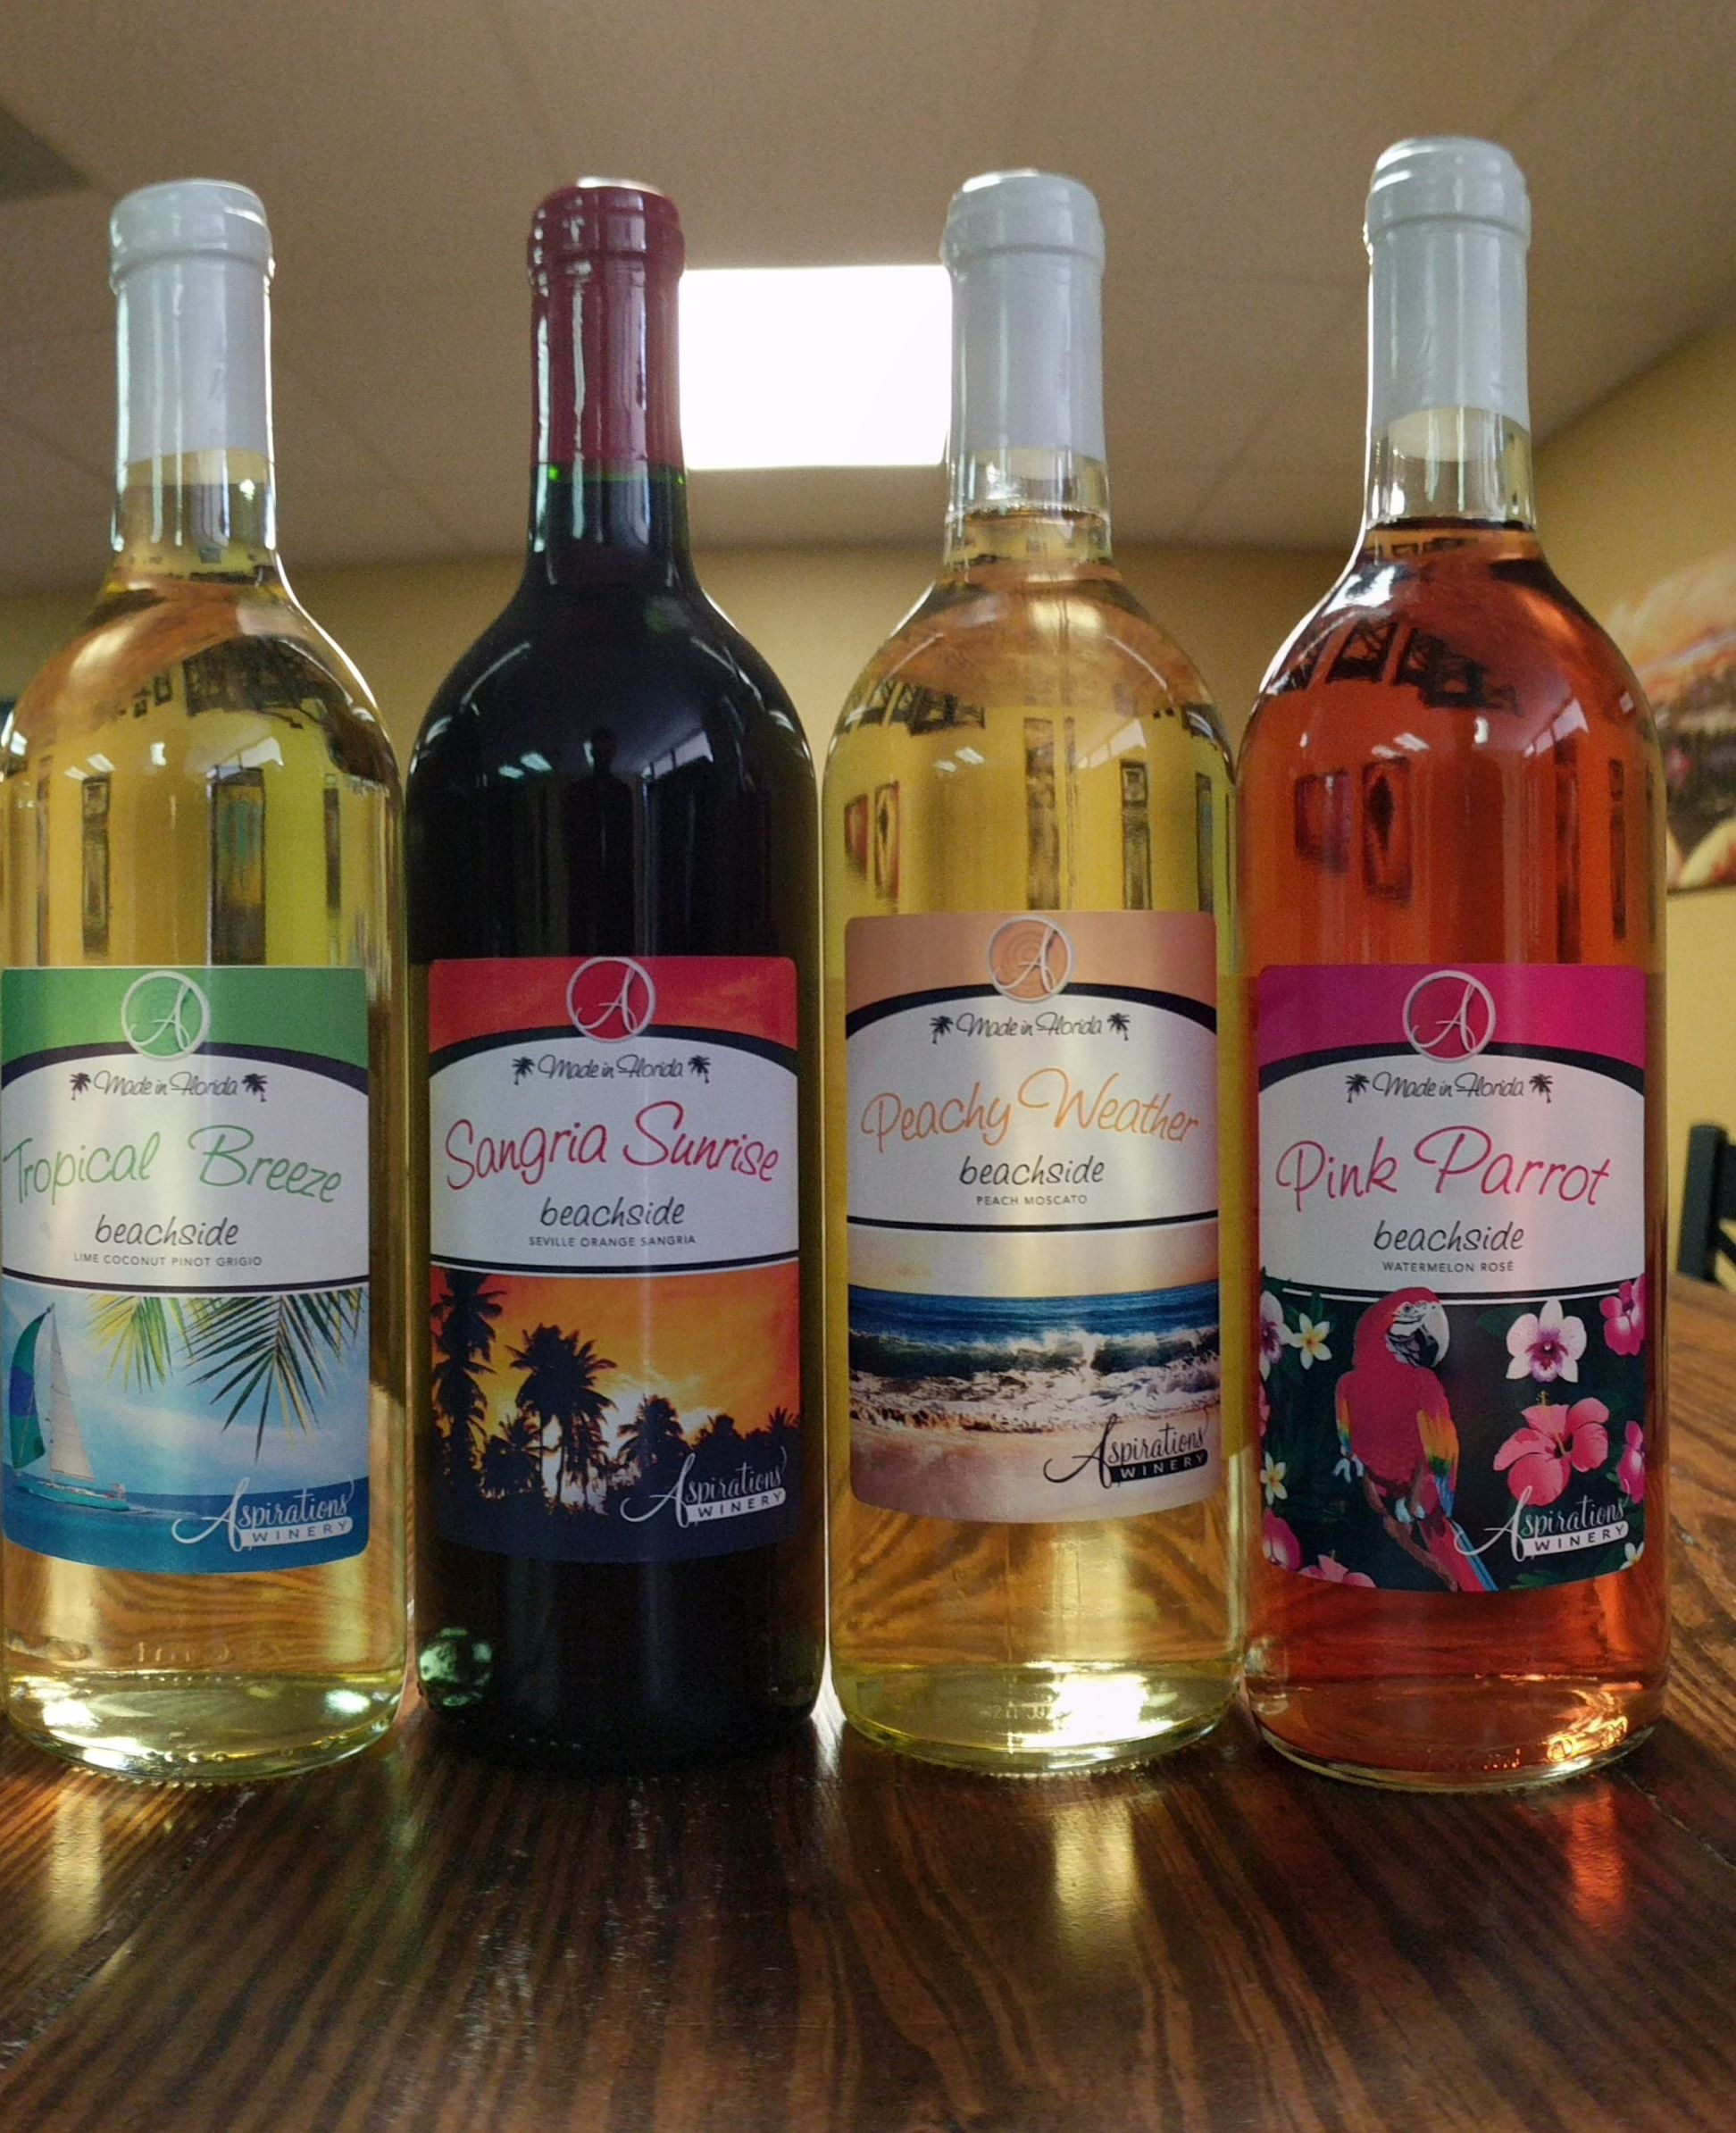 This is our beachside collection of wines tropical breeze sangria sunrise peachy weather and pink parrot